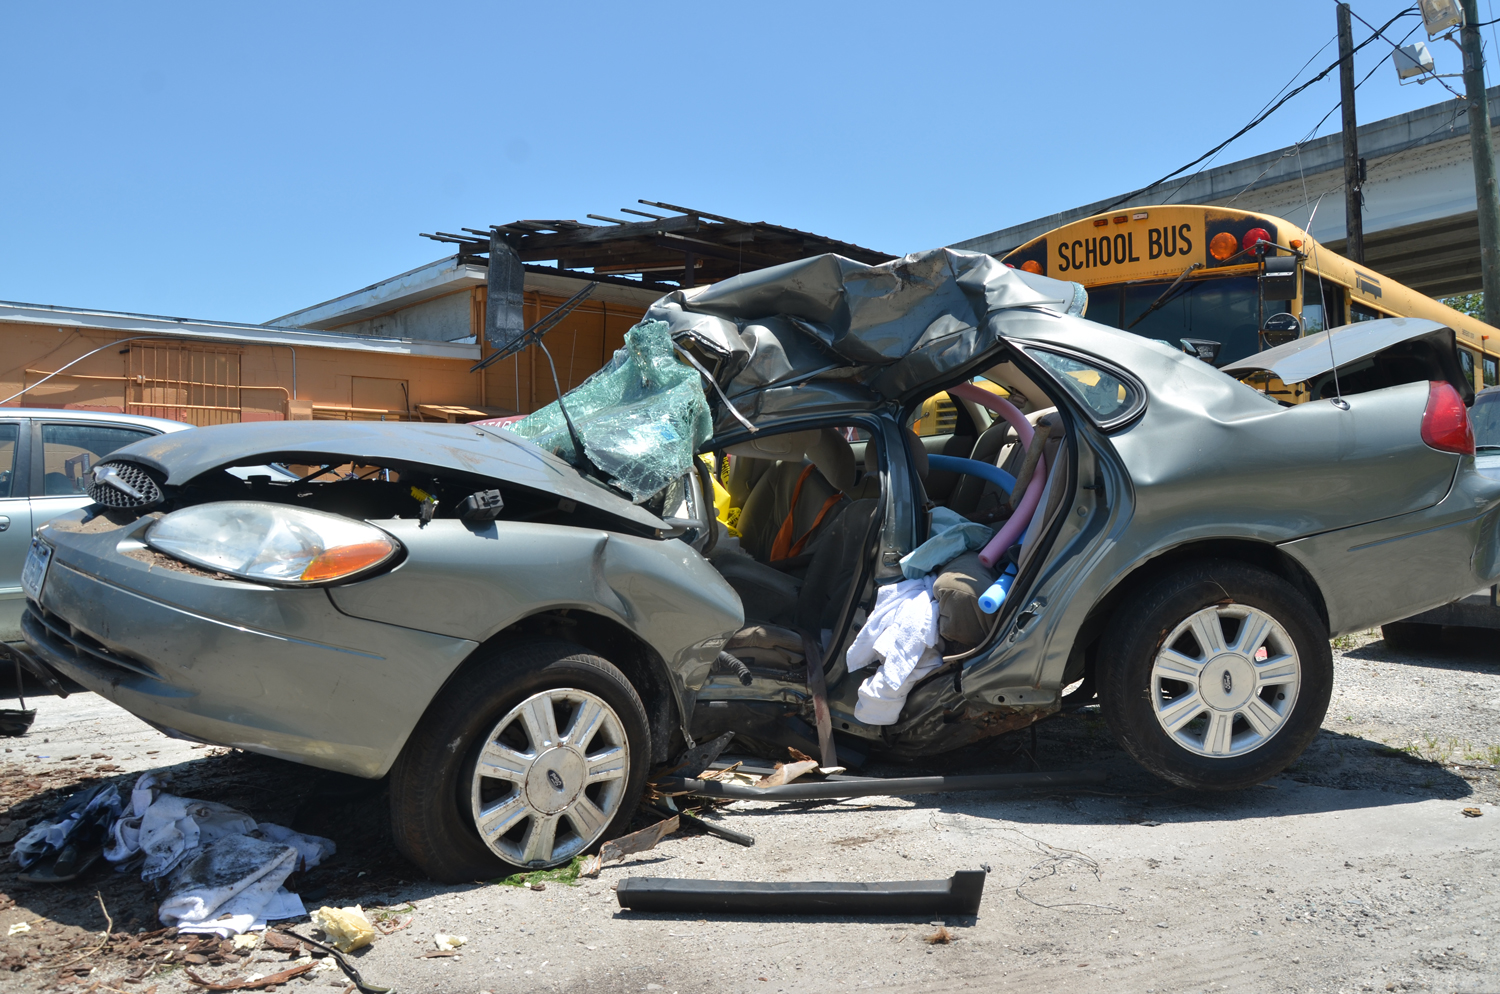 The Ford Taurus after it was towed from the scene. The tree it struck left & Mark Weins 56 Is Killed in Single-Car Wreck on A1A Overnight ... markmcfarlin.com